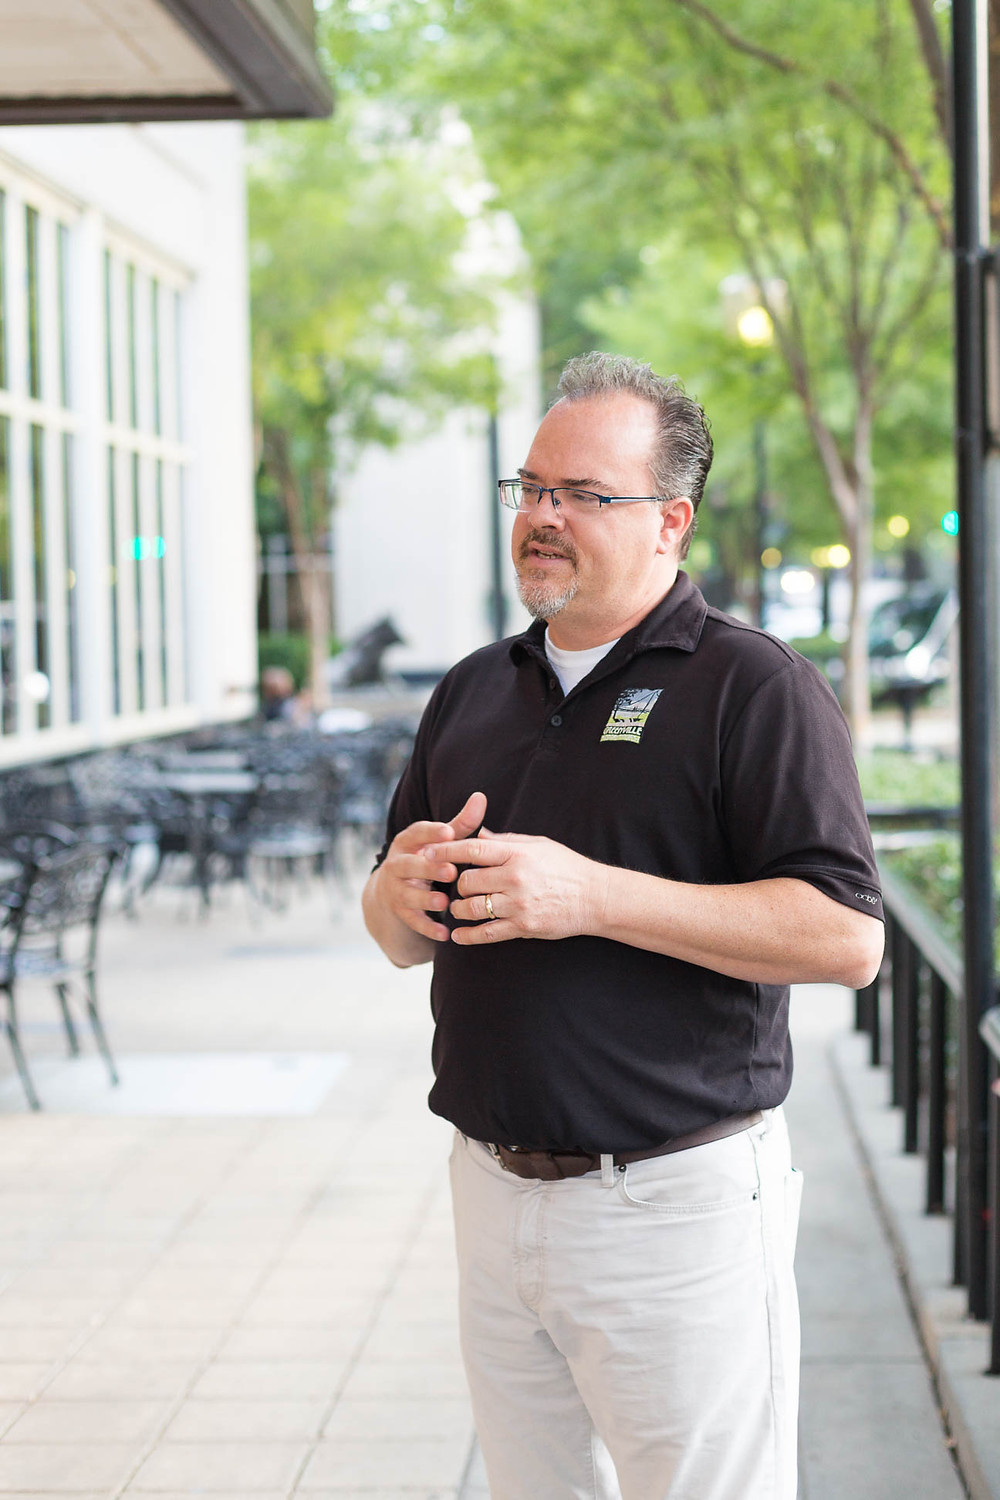 tour guide telling tourists about Greenville history and food scene